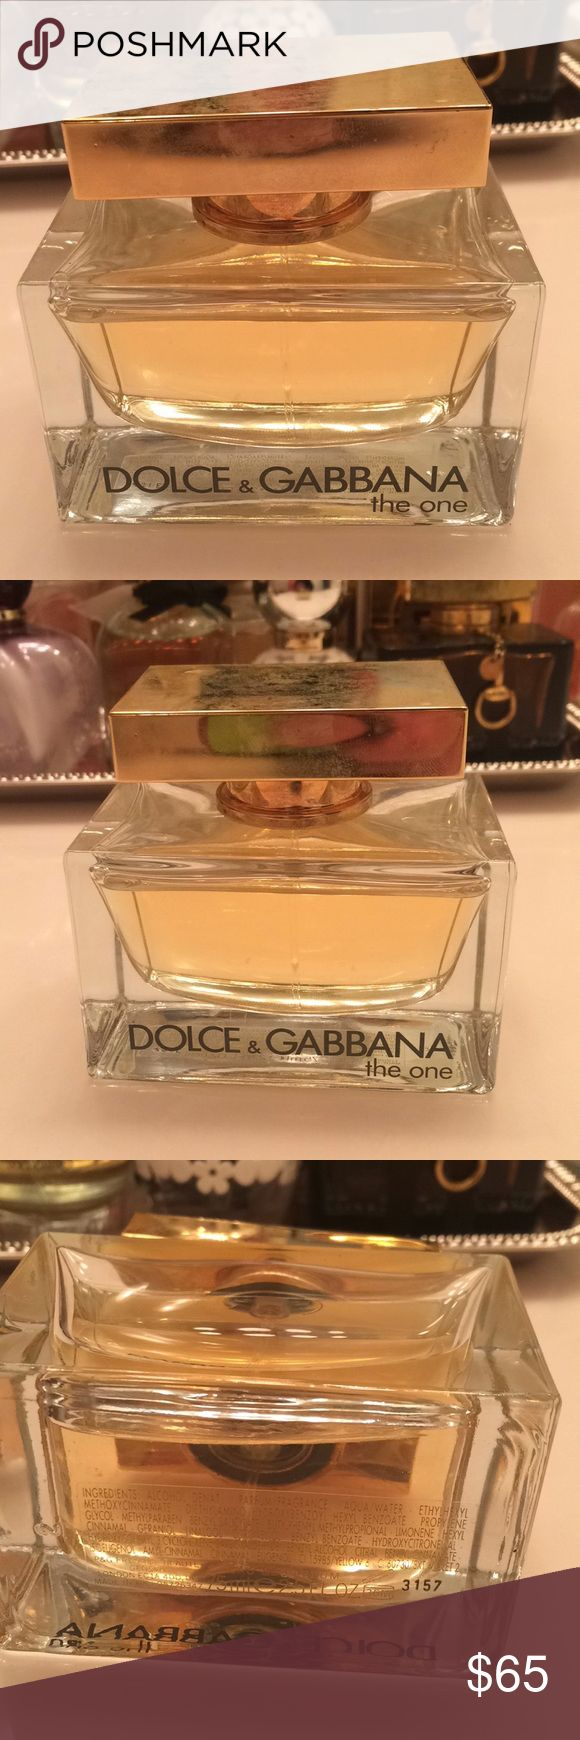 Dolce &e Gabbana perfume (tester) The One by D&G Dolce & Gabbana Other